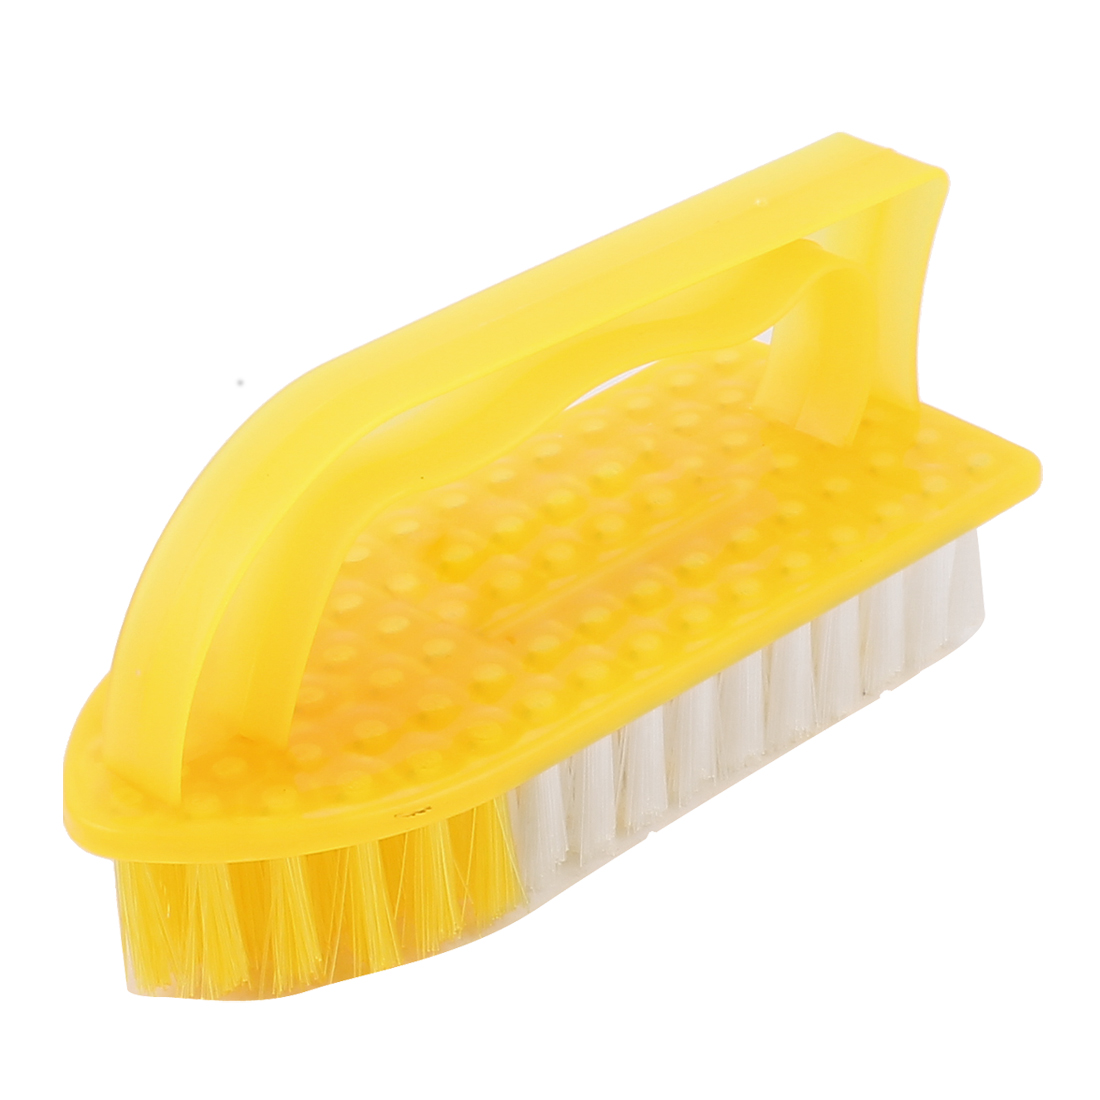 Plastic Housing Clothes Shoes Floor Cleaning Washing Scrubbing Scrub Brush Yellow